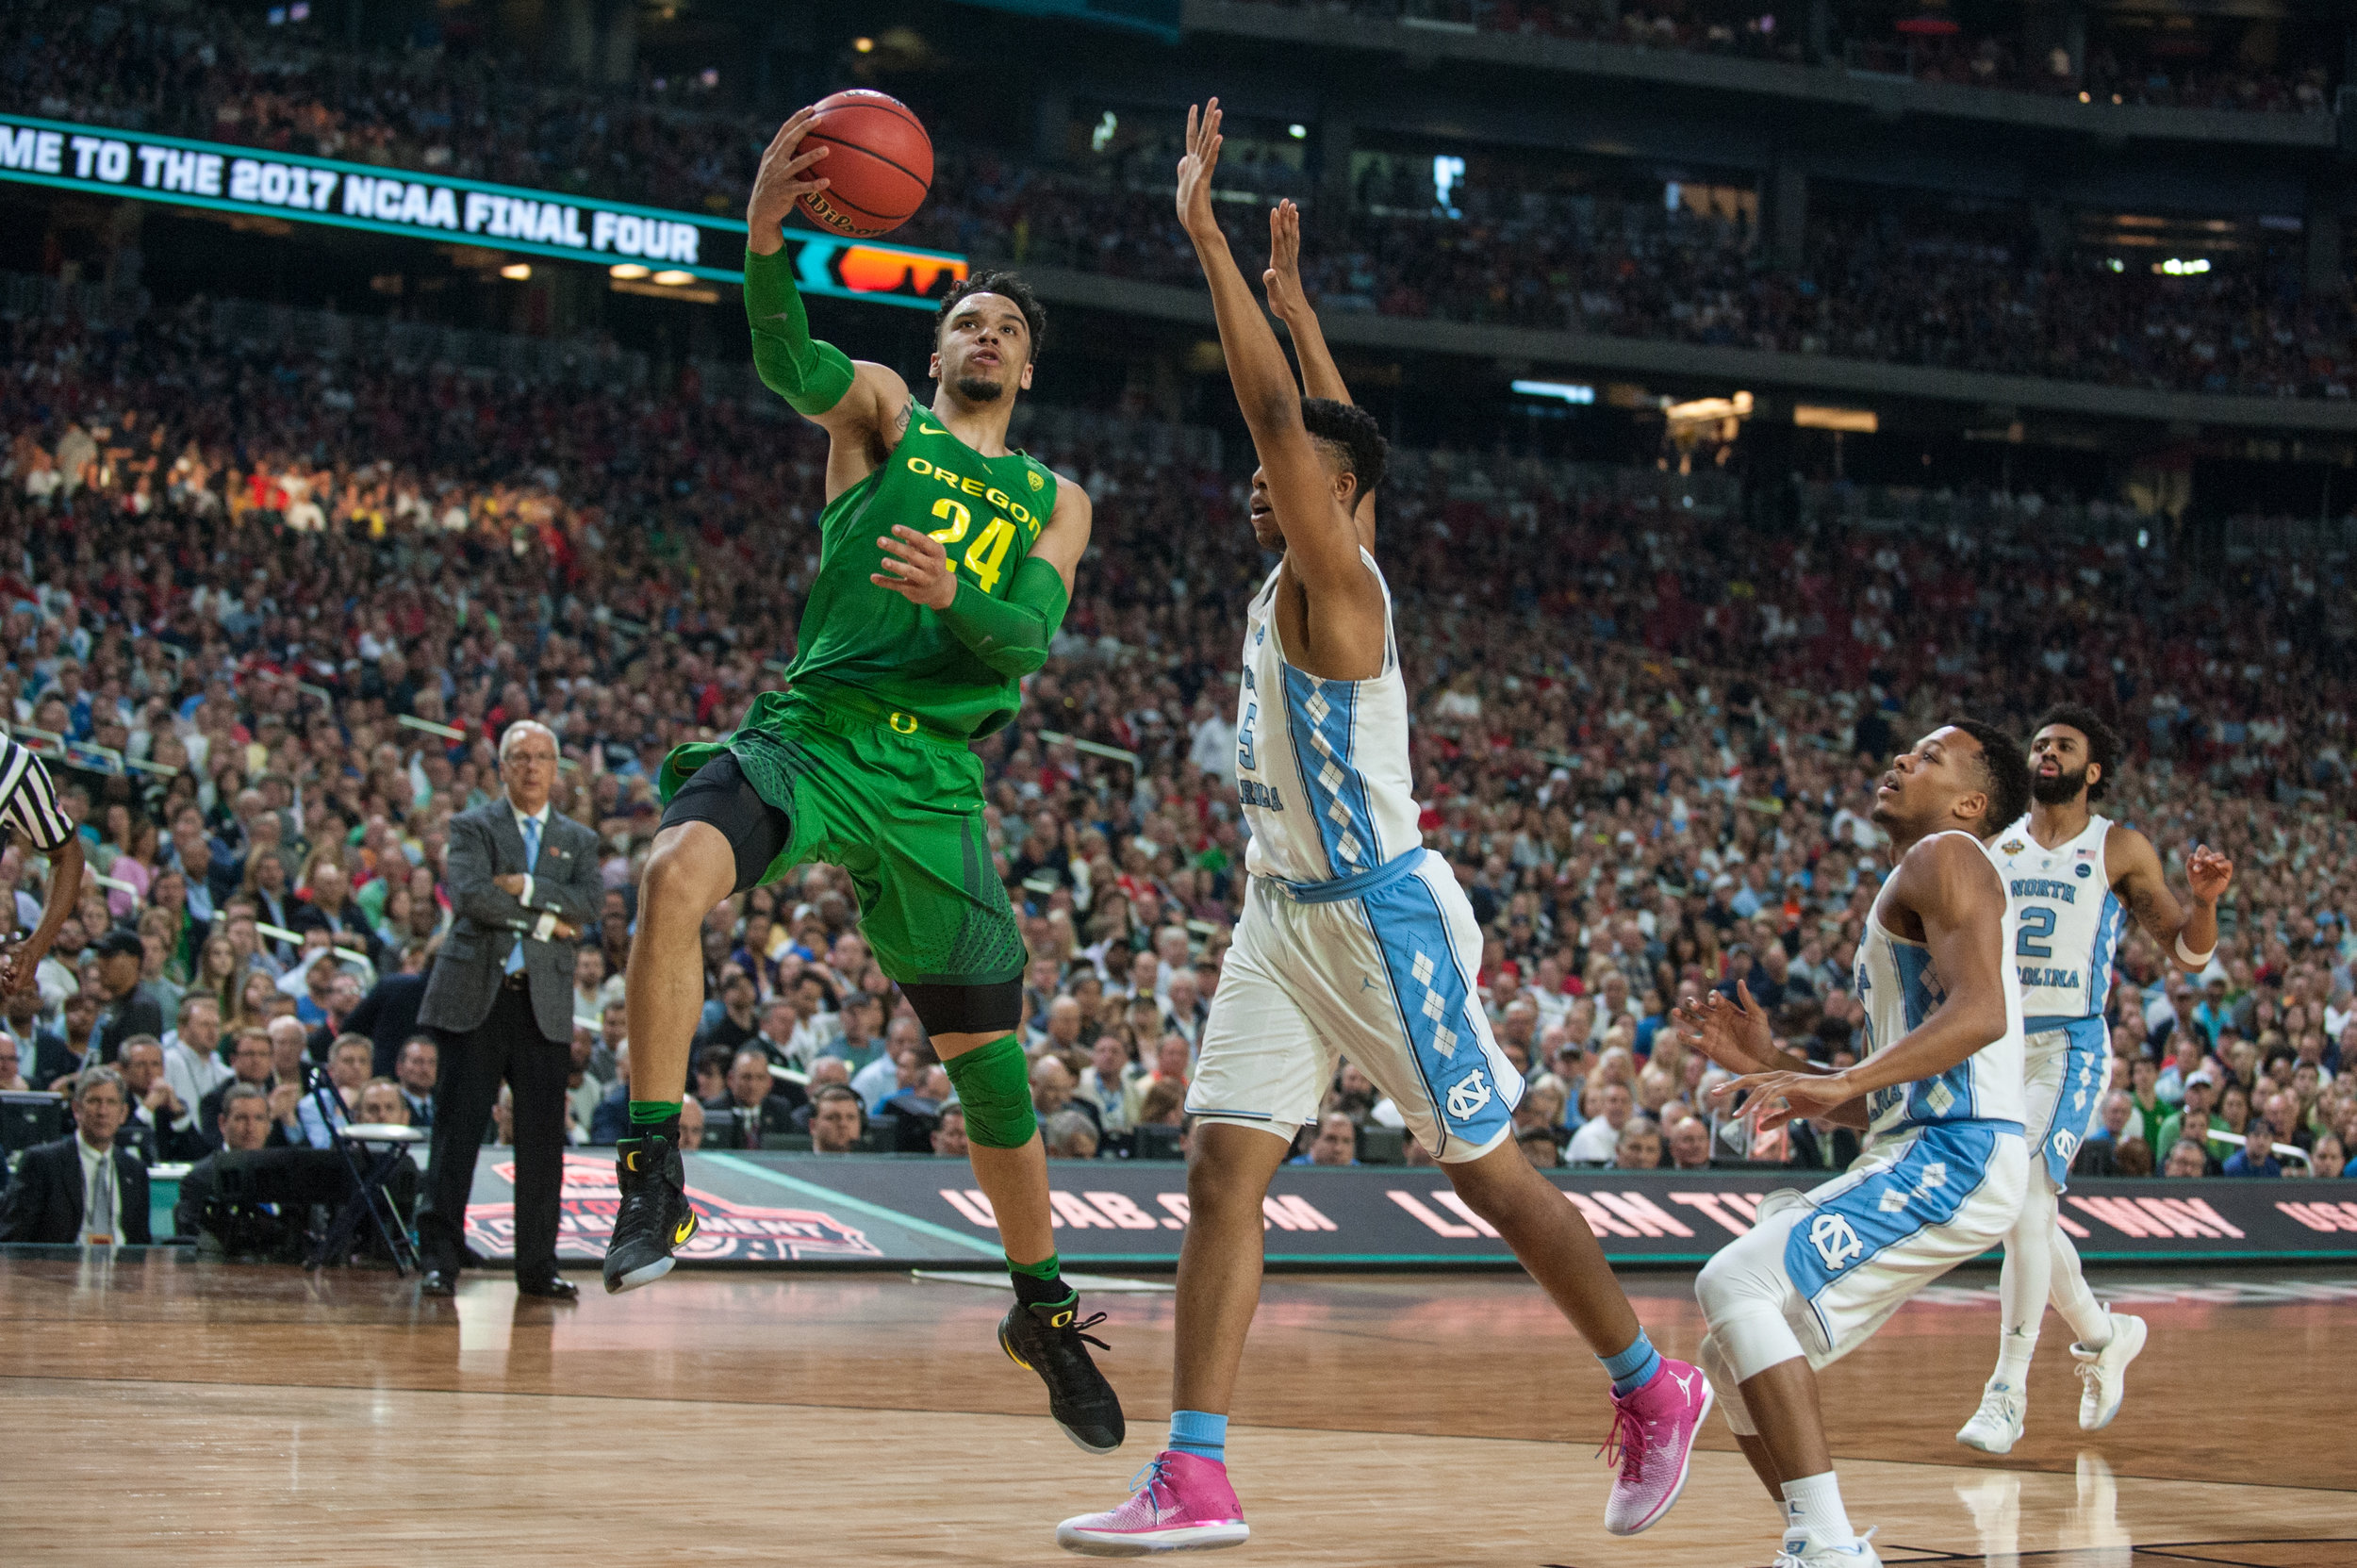 17.03.31.emg.an.final.four.oregon.vs.north.carolina-16.jpg